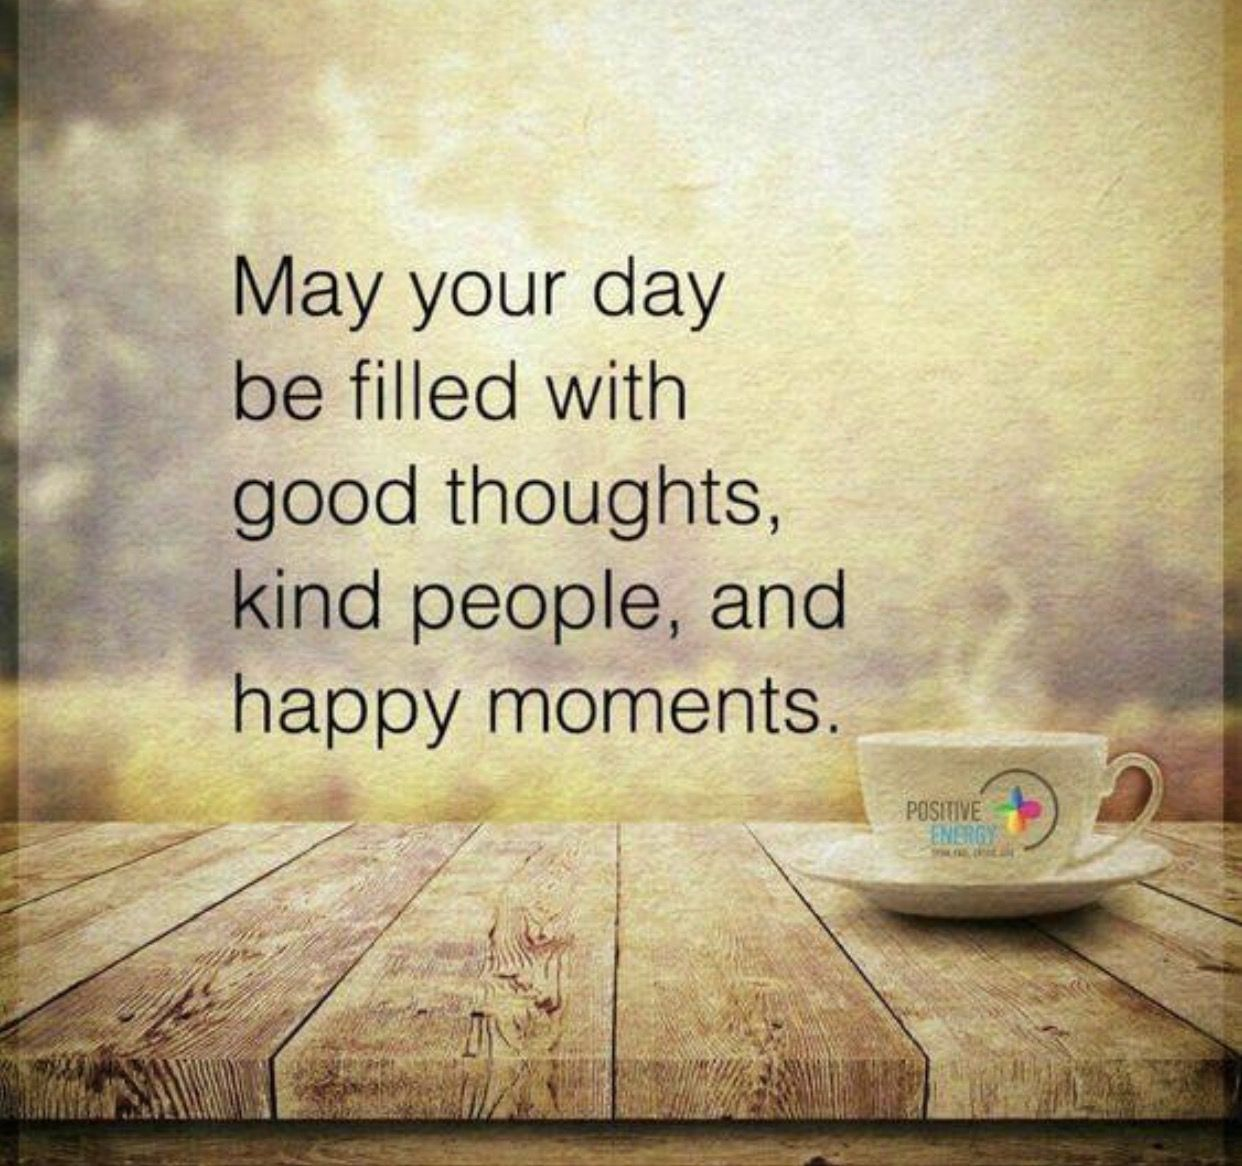 Good Morning Spiritual Quotes Pinlinda Dooley On Signs  Pinterest  Wise Quotes